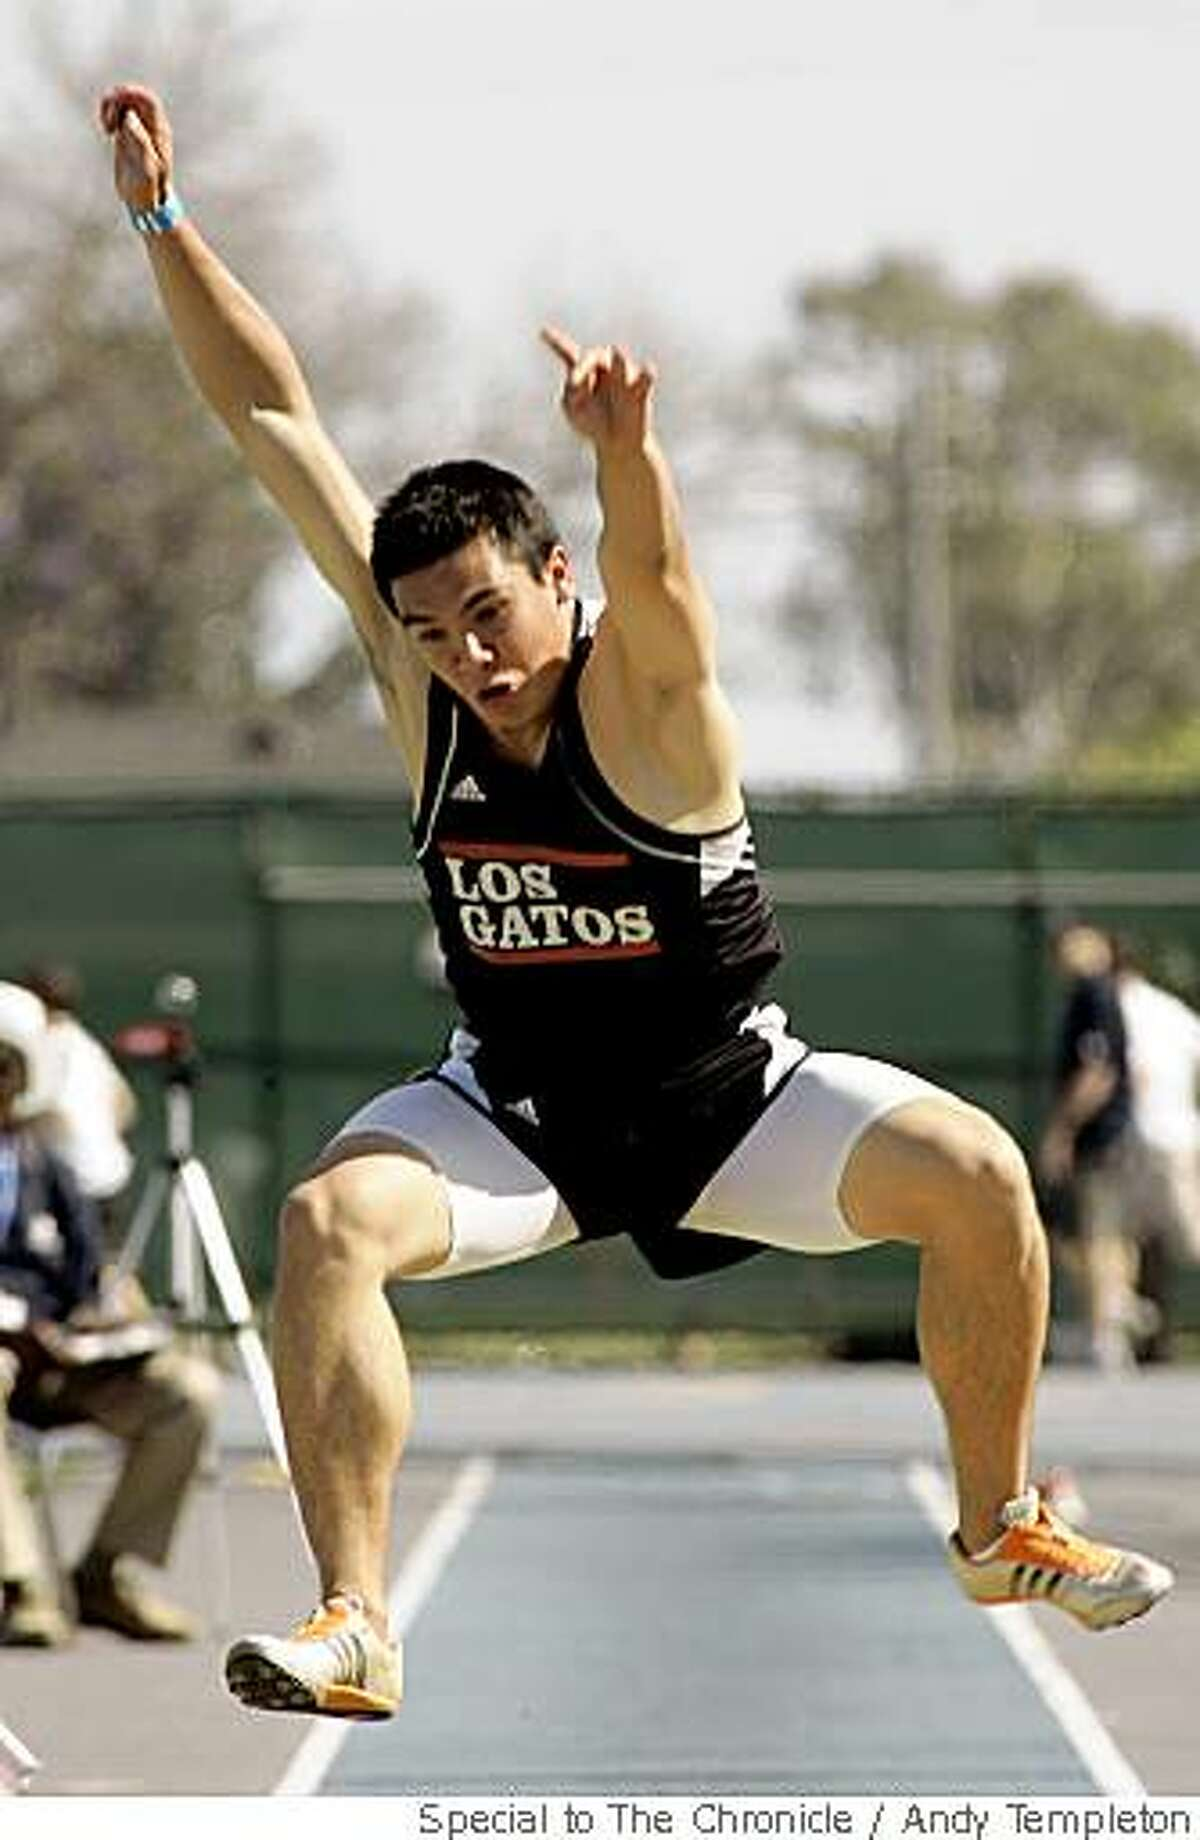 Kevin Rutledge of Los Gatos placed 2nd in the Boys Long Jump at the CIF Track and Field Championships Saturday in Norwalk.